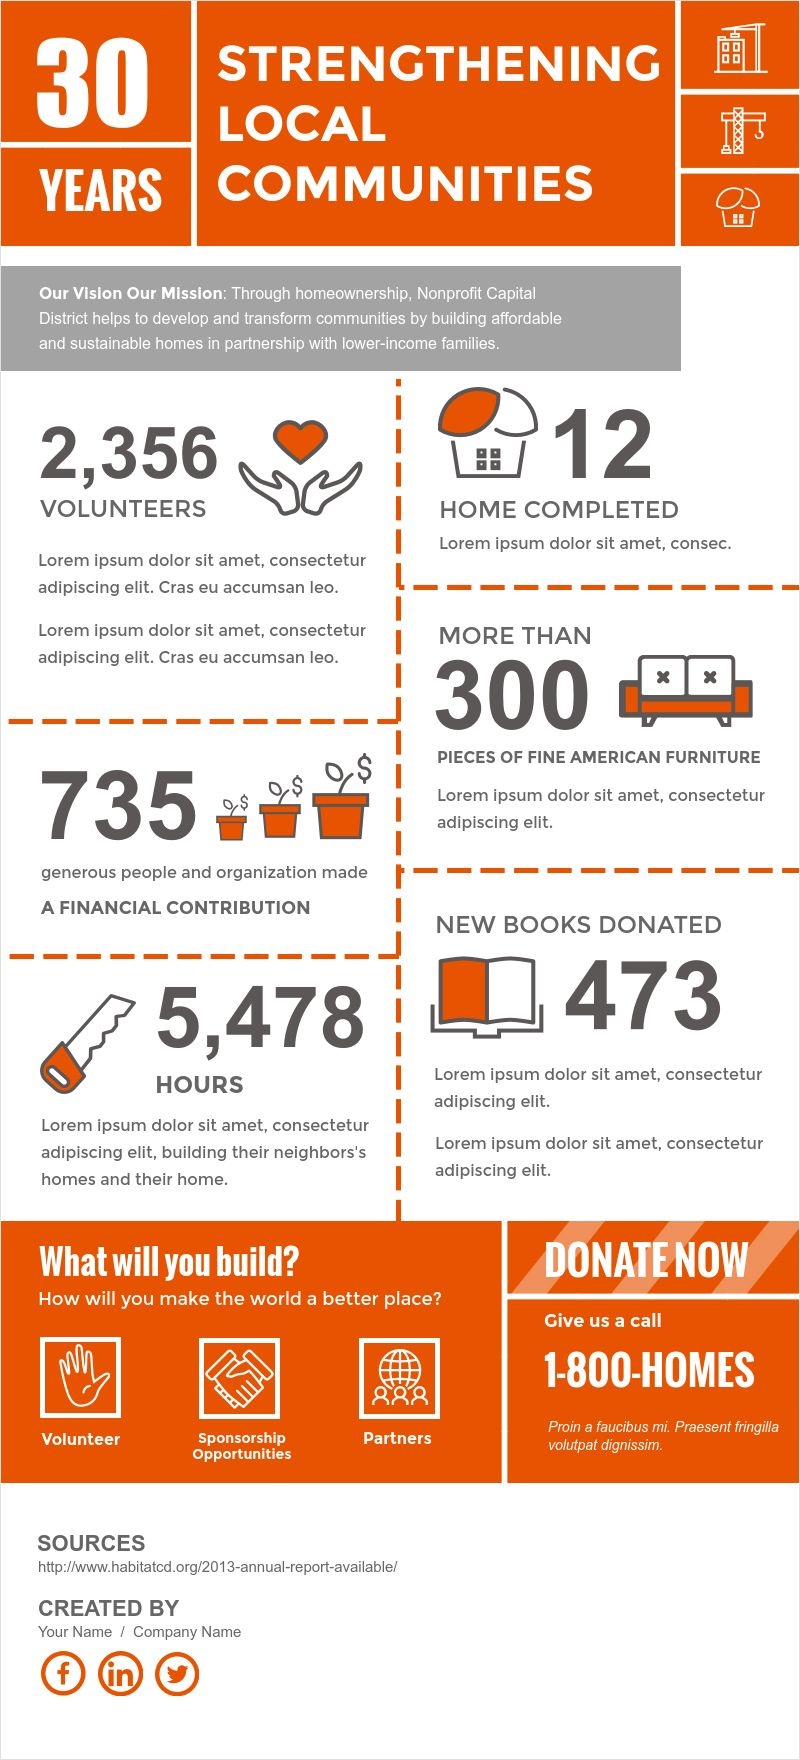 Visme Introduces New Infographic Templates for NonProfits